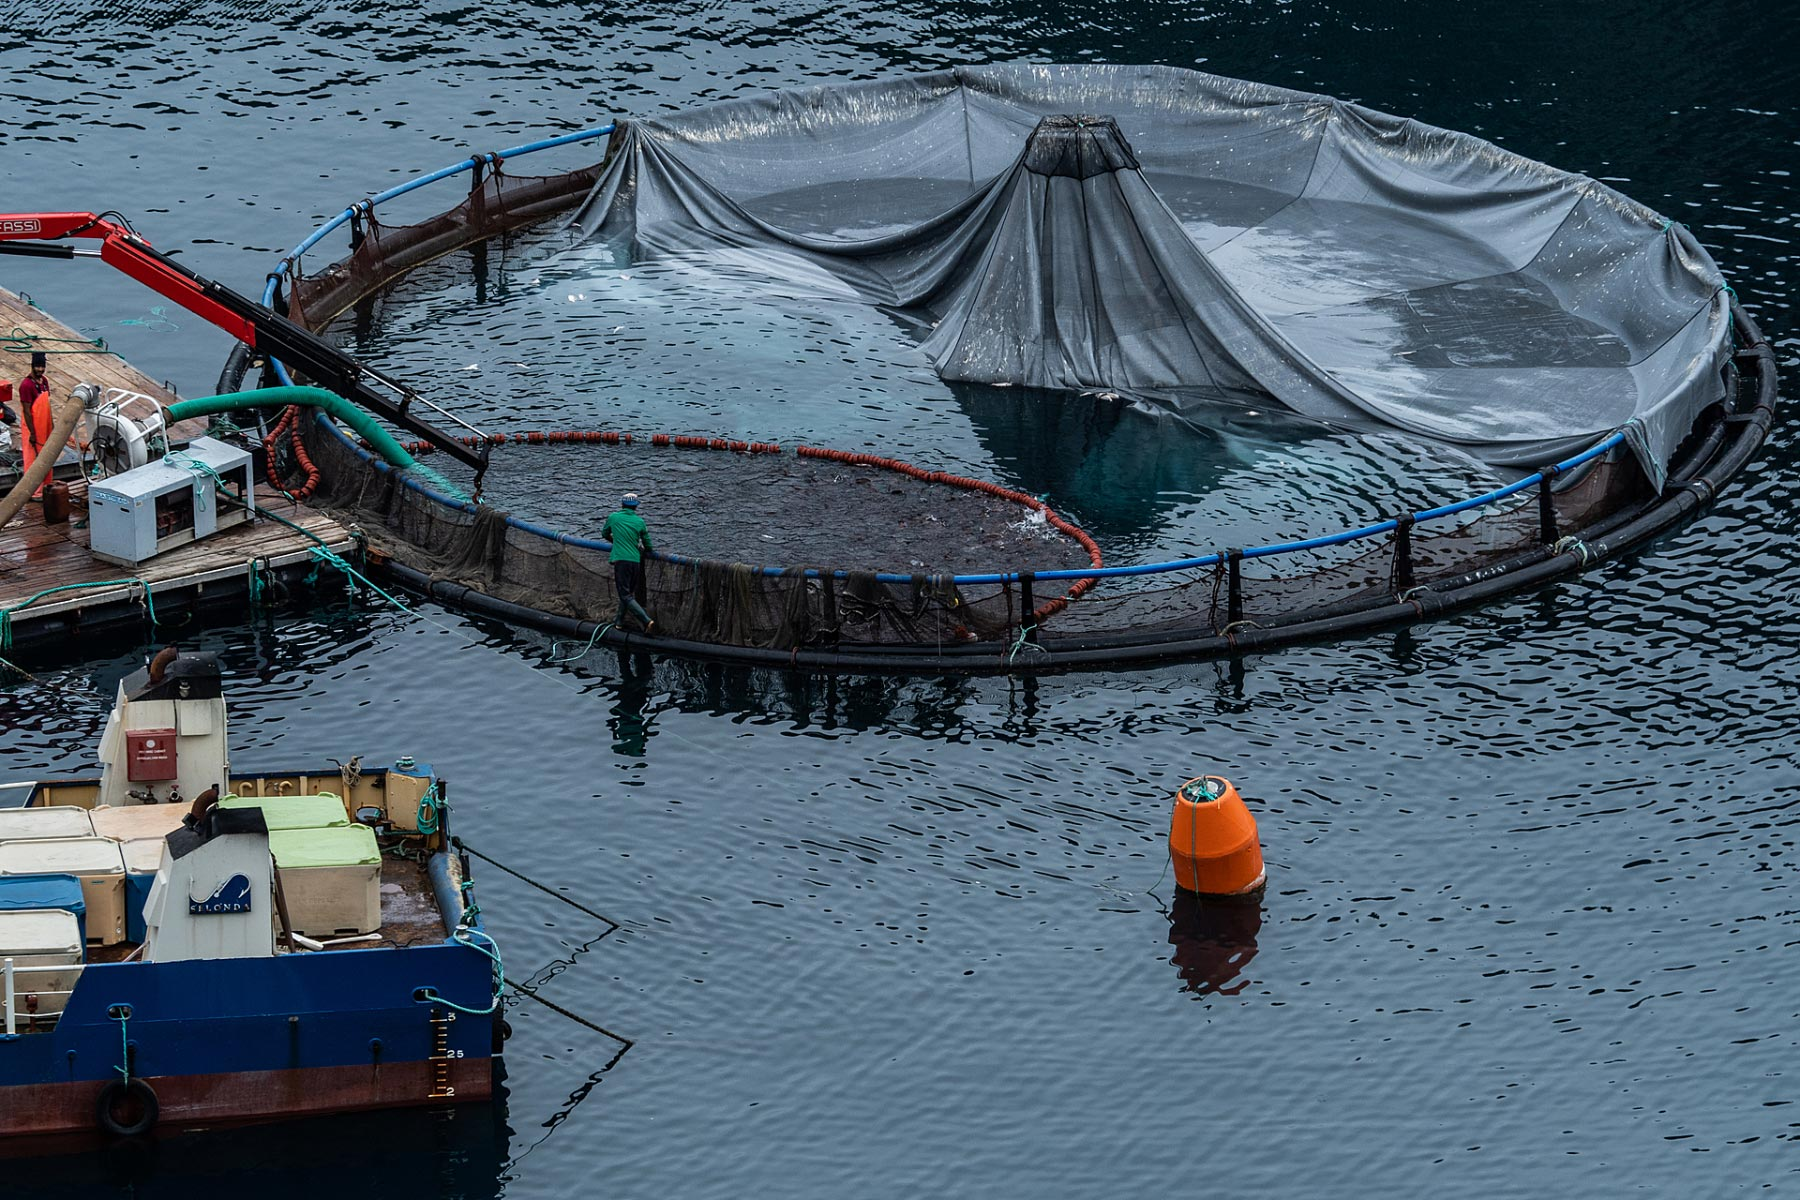 With a focus on gilt-head sea bream and European sea bass, Greece is known worldwide for its extensive aquaculture and commercial fishing industries. Fish farms discharge high levels of harmful pollutants, leading to algal blooms and dead zones and contaminating the water supply. They are also breeding grounds for disease, which can spread to native fish populations. Not only are the fish farms in Greek coastal sea and bay ecosystems damaging the local ecosystems, but they are forcing hundreds of thousands of fish inside overcrowded cages, just to be killed en masse using temperature shocks to maintain the fast pace of the production chain.